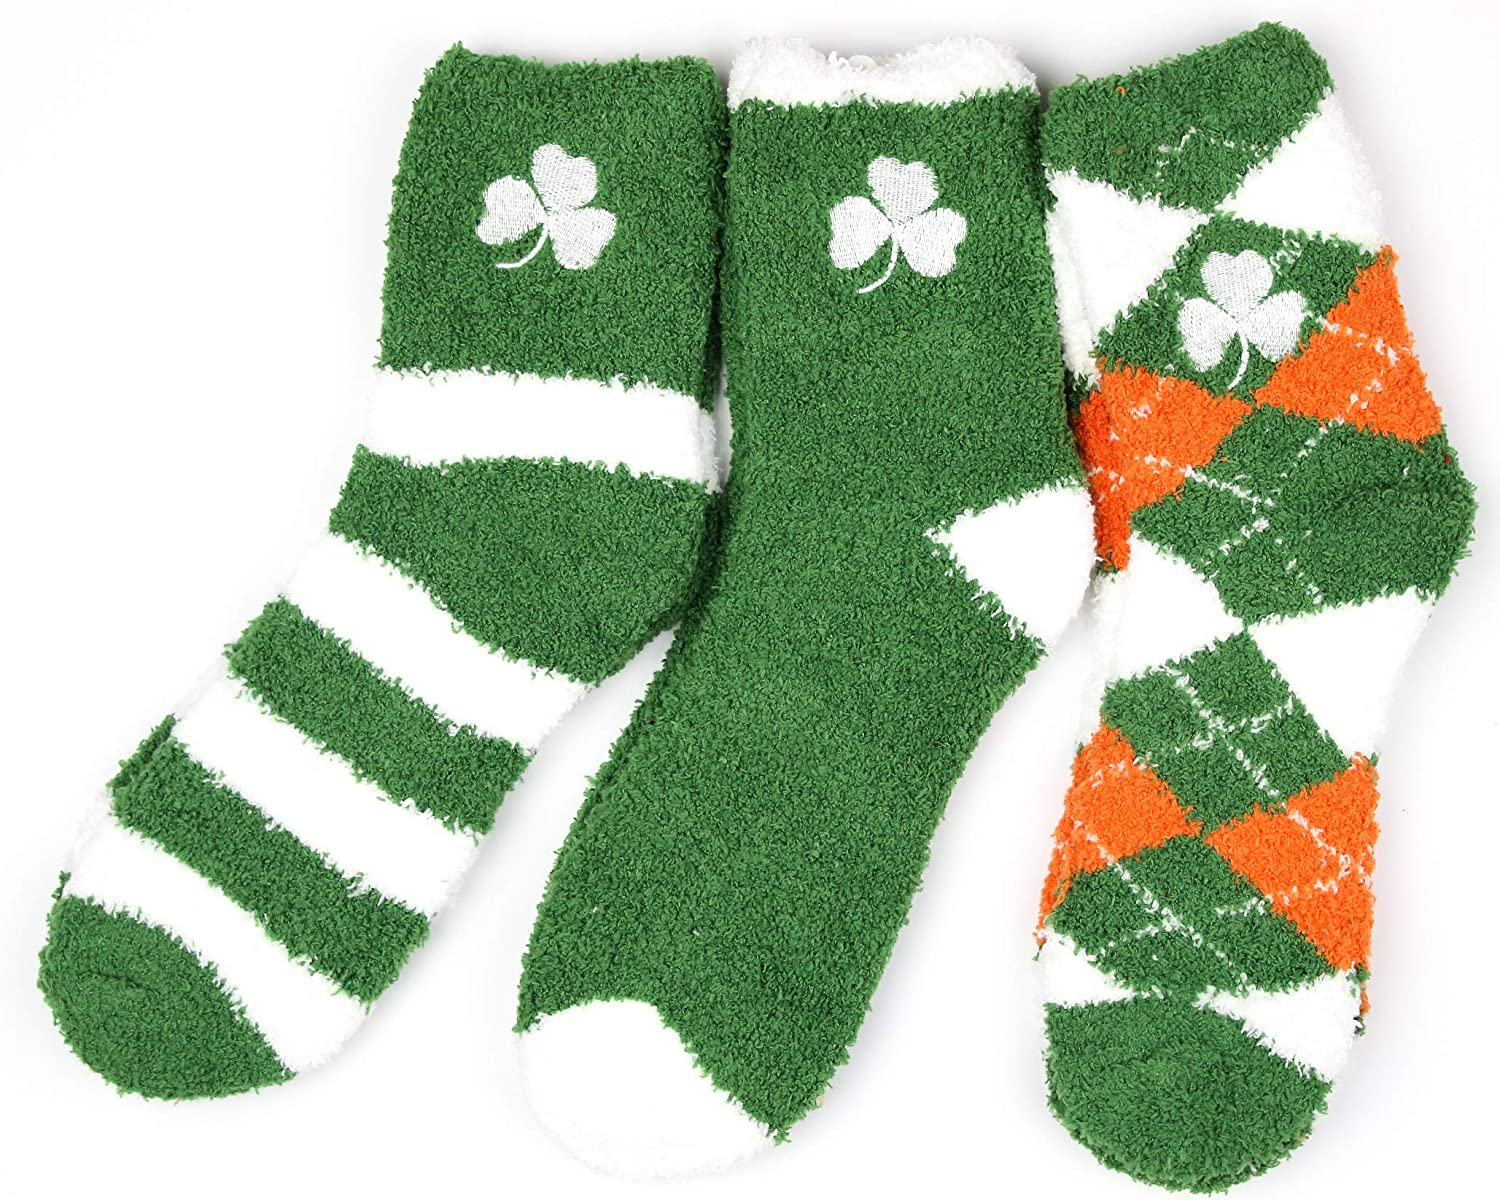 One Size Fits Most Donegal Bay NCAA Notre Dame Fighting Irish Irish 3 Piece Fuzzy Sock Bundle Multicolor